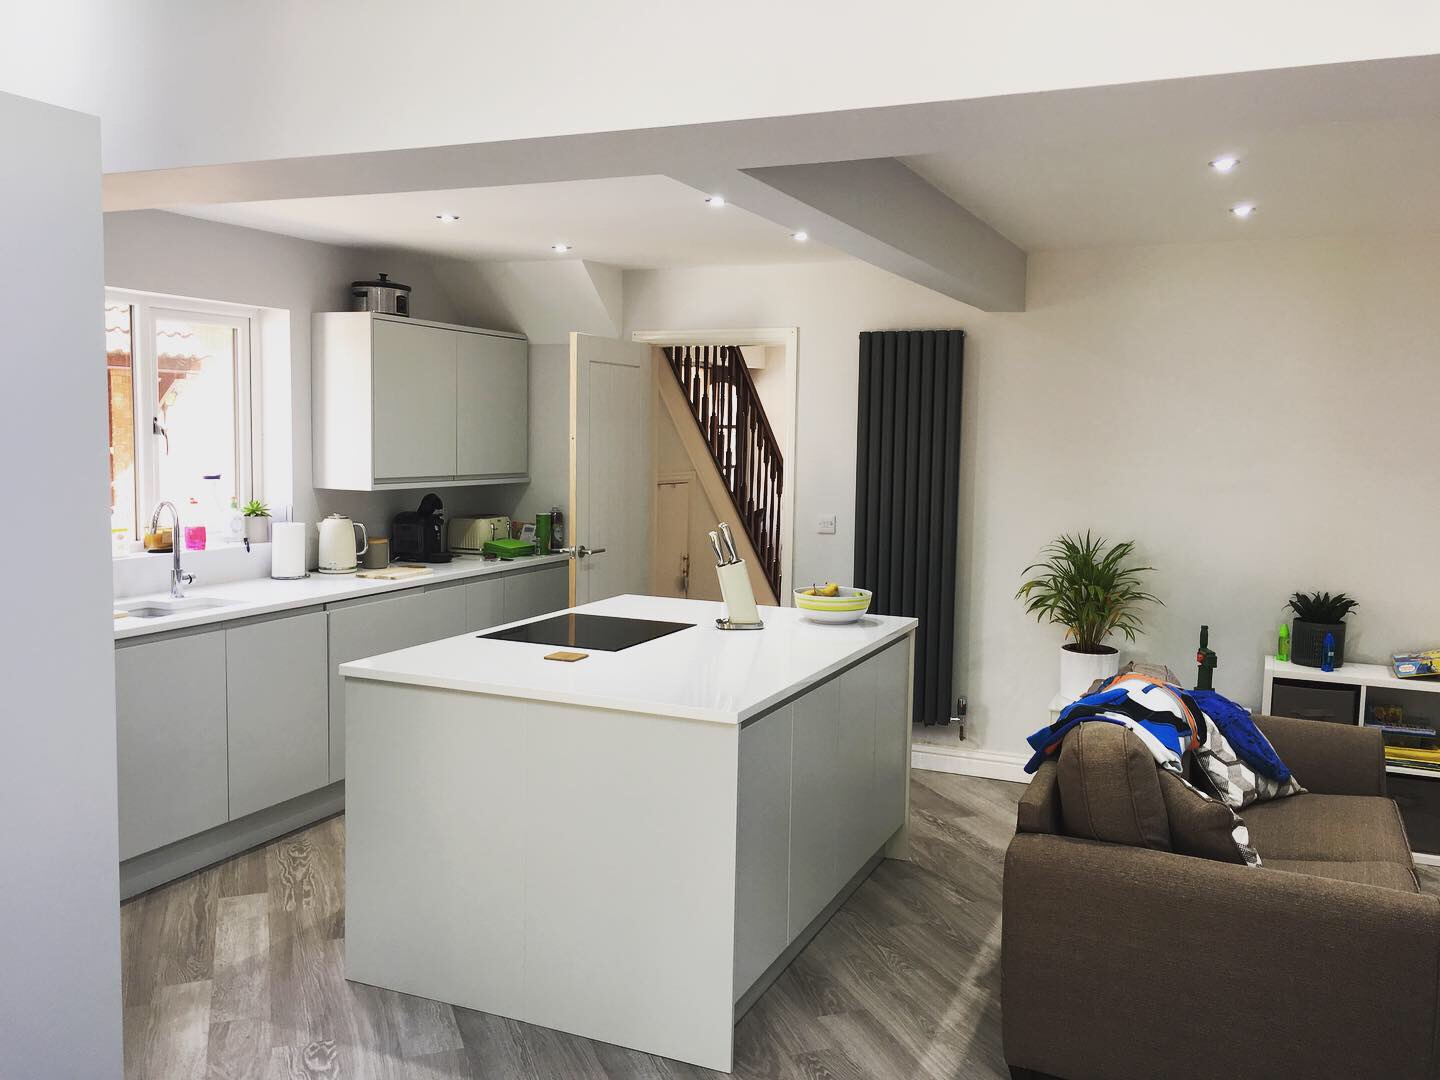 Walkington, Rear Kitchen and Dining Room Extension